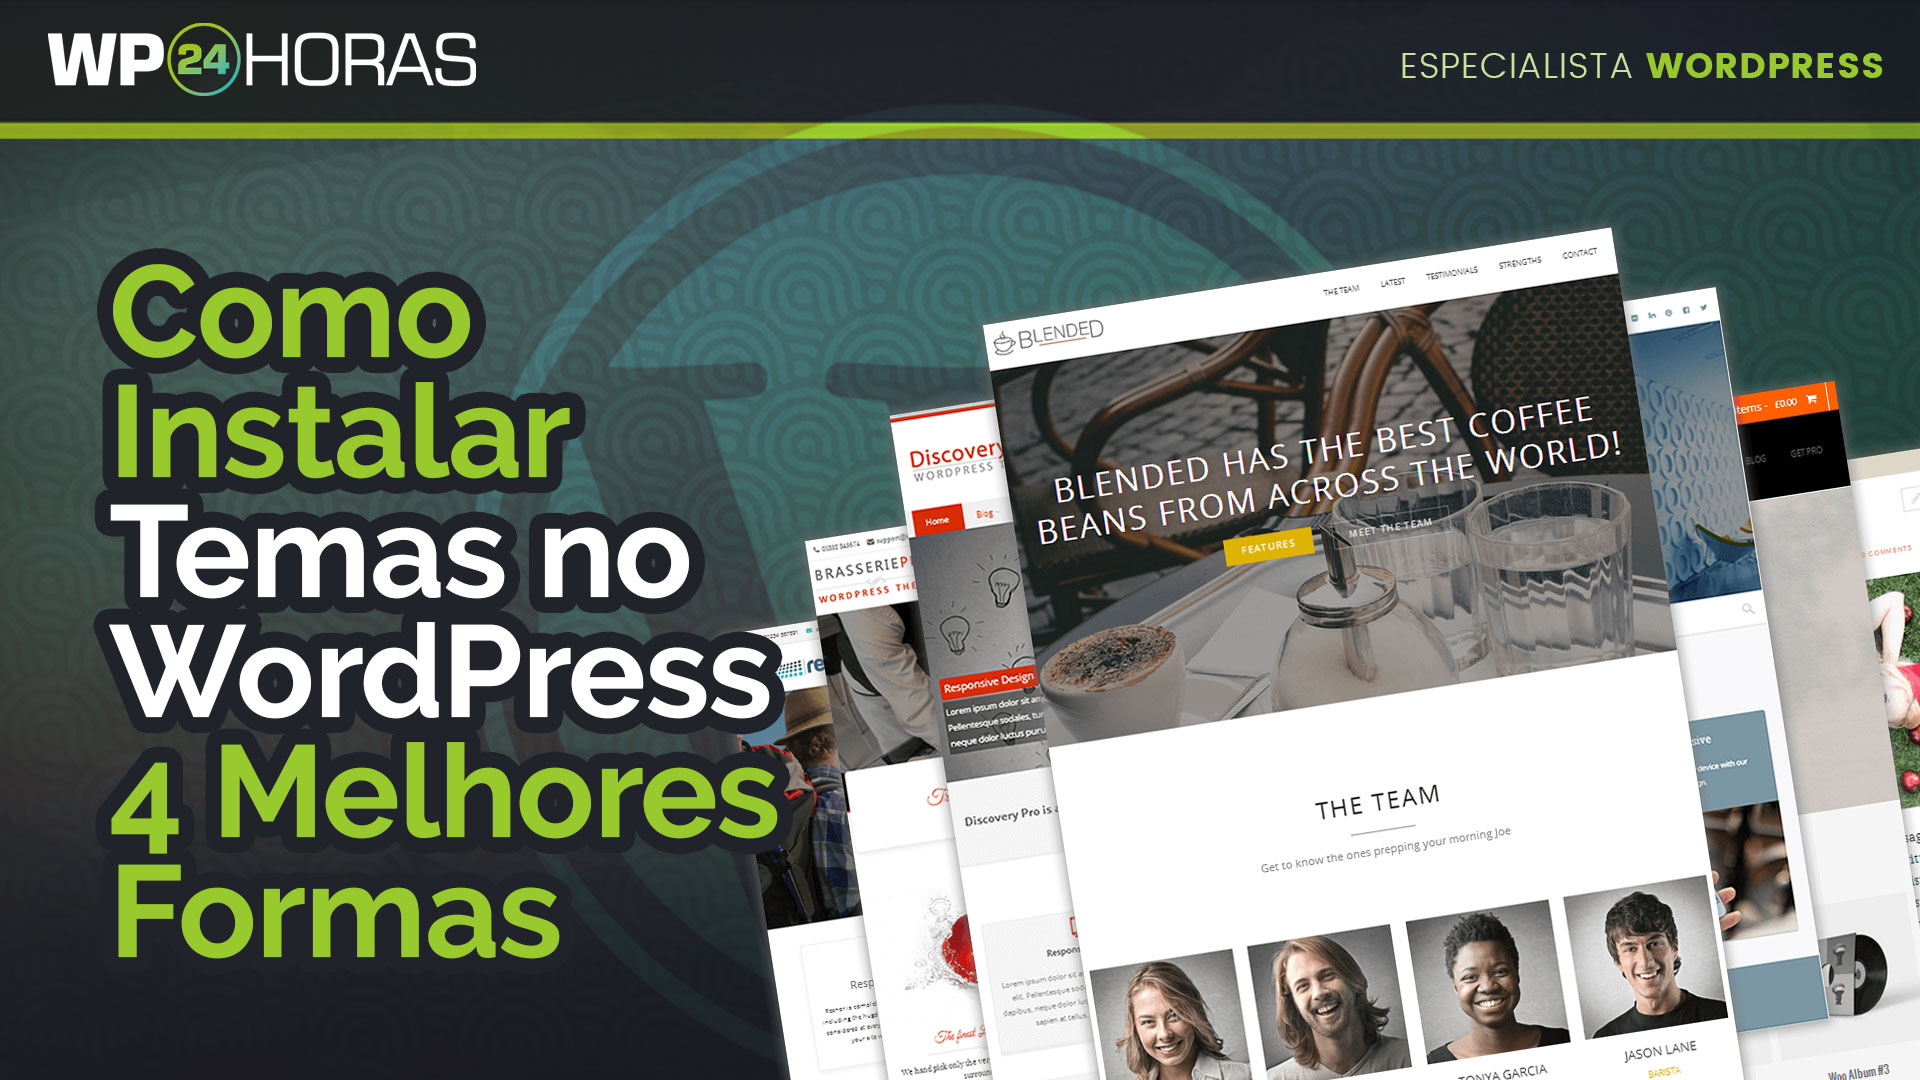 Como Instalar Temas no WordPress